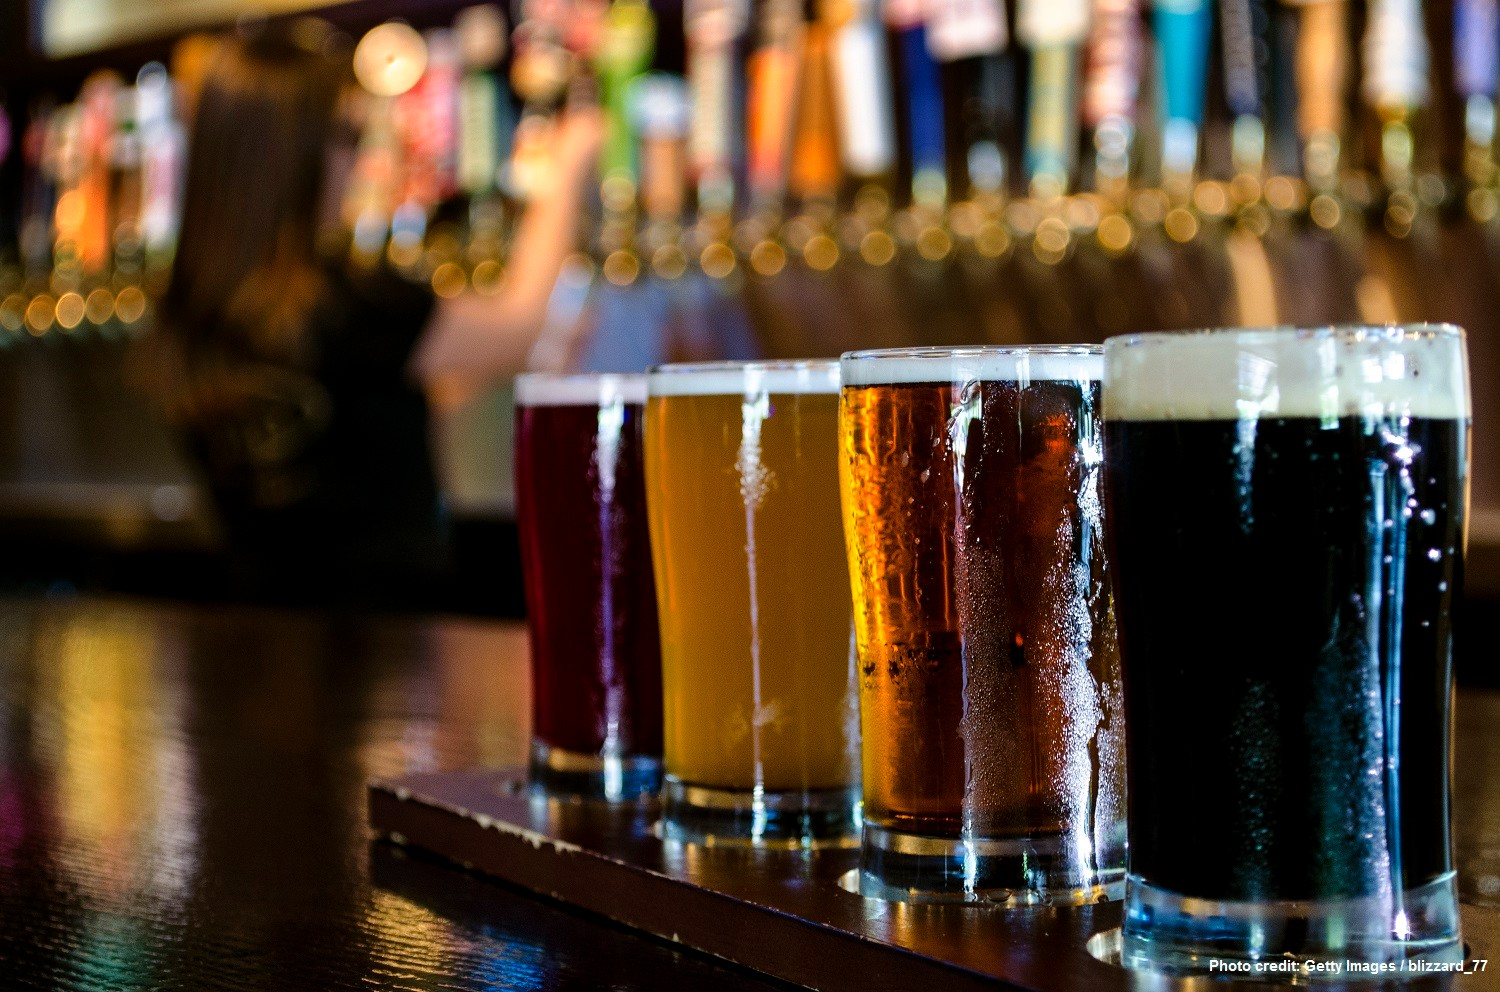 Enoy craft beer at the nation's hops capital when you visit breweries in Yakima, WA.